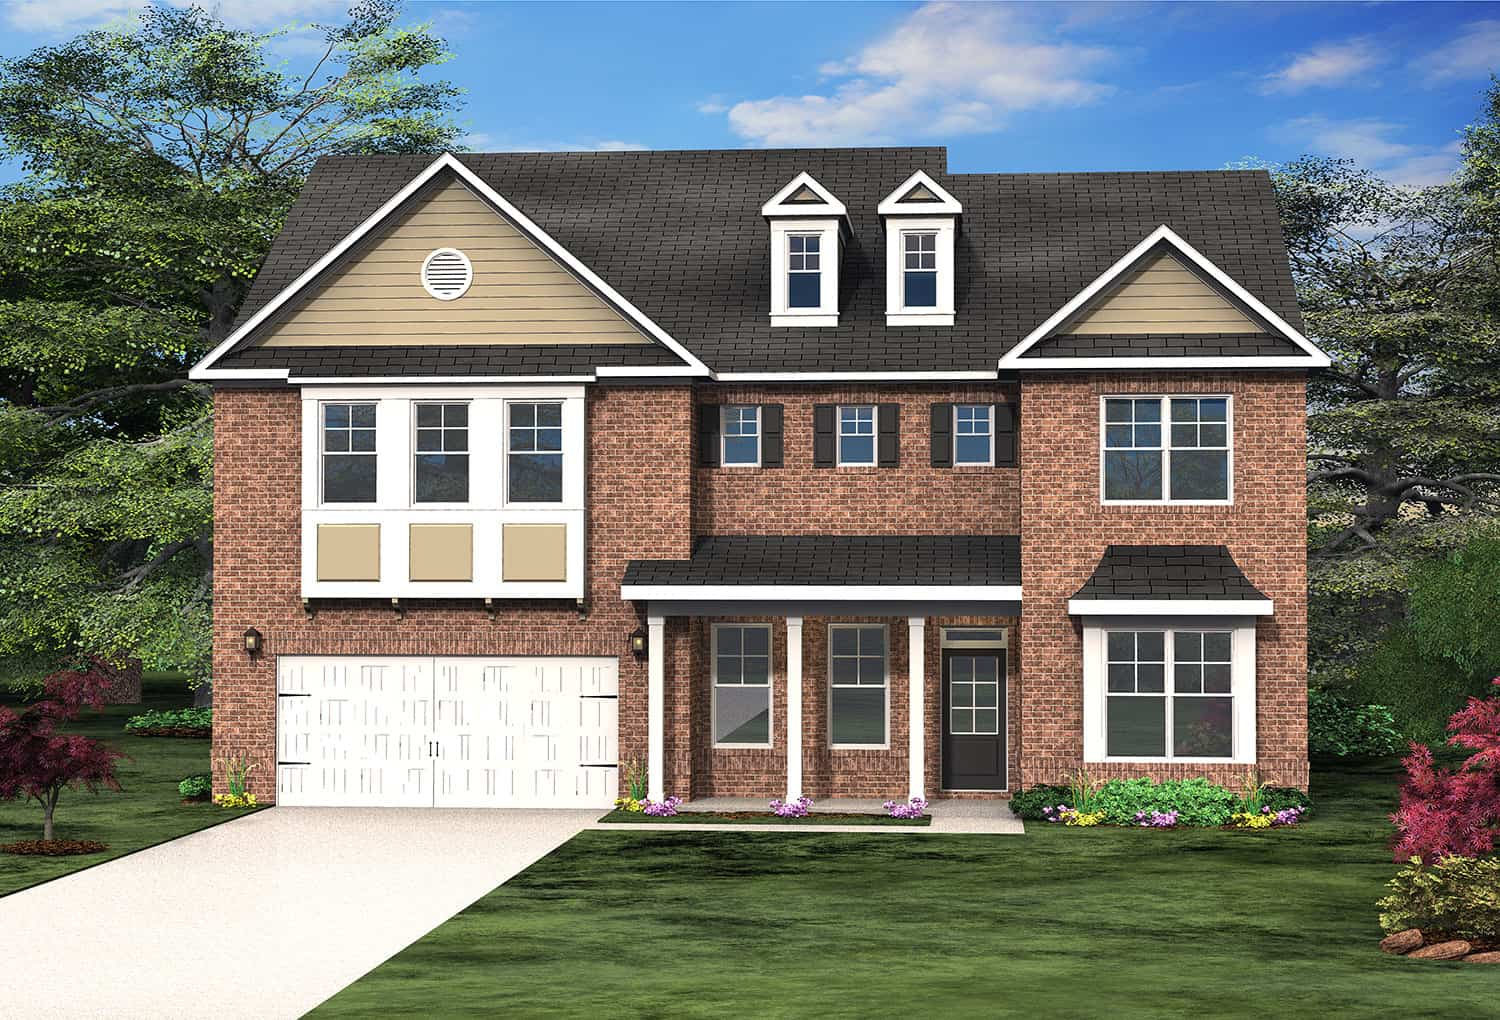 Paran Homes Makes Its Dekalb County Debut with The Woods of Midvale – Paran Homes Floor Plans